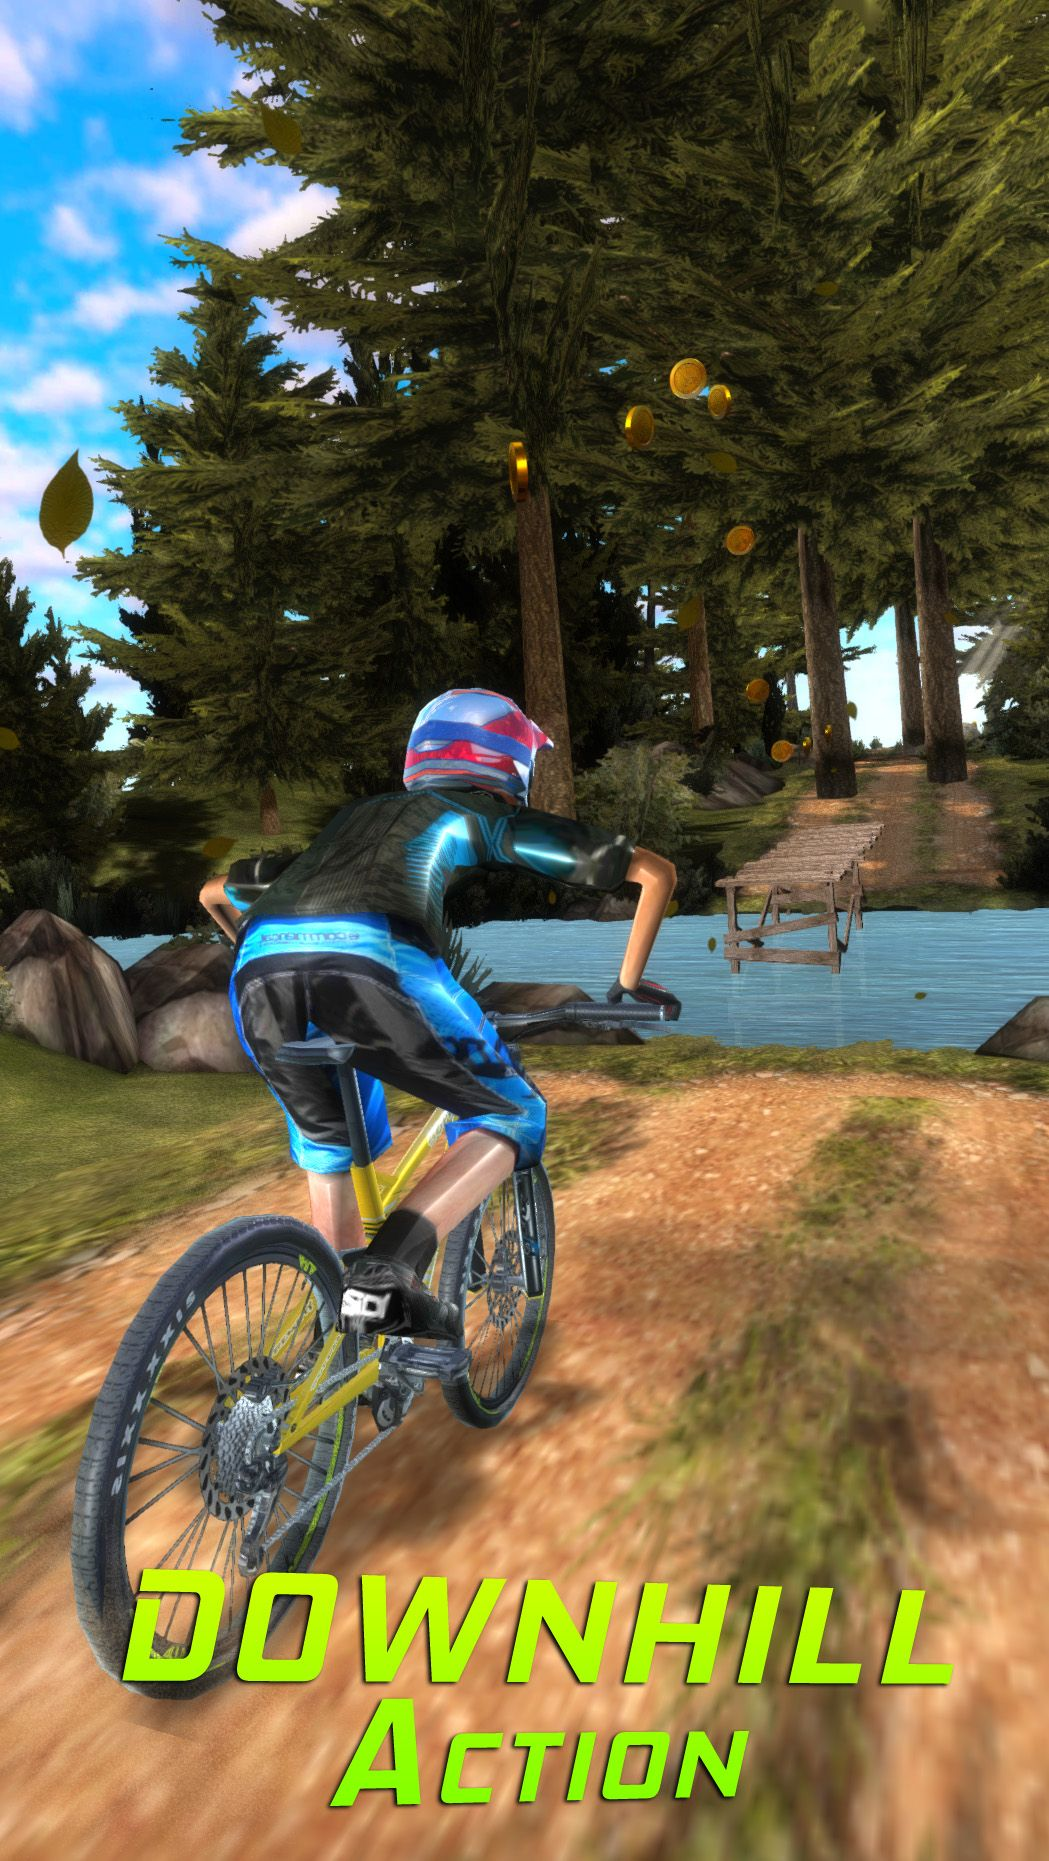 Bike Dash combines an extreme endless runner game with